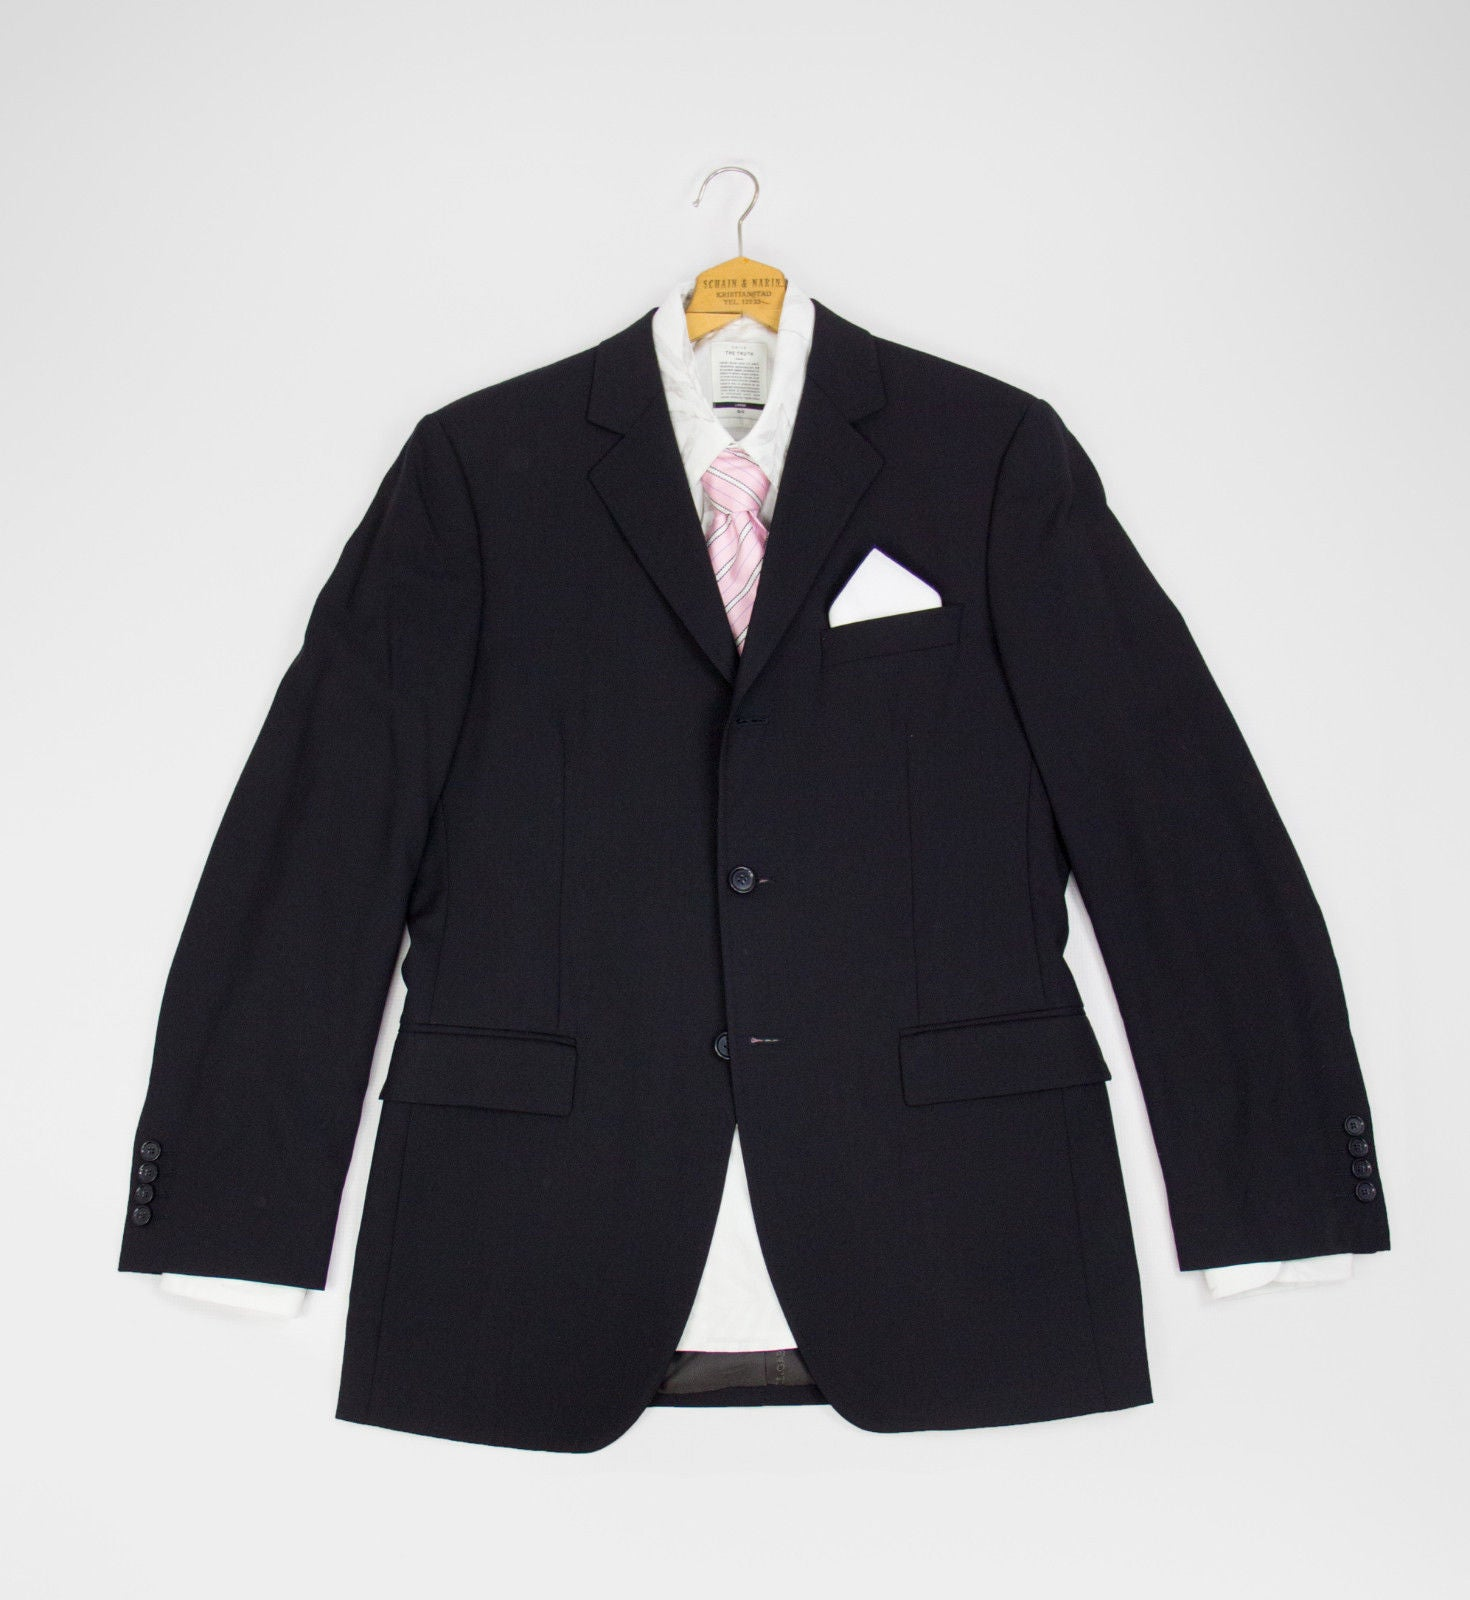 DOLCE & GABBANA Navy Blue 3 Button Stretch Wool Blazer, SIZE US 38R - secondfirst